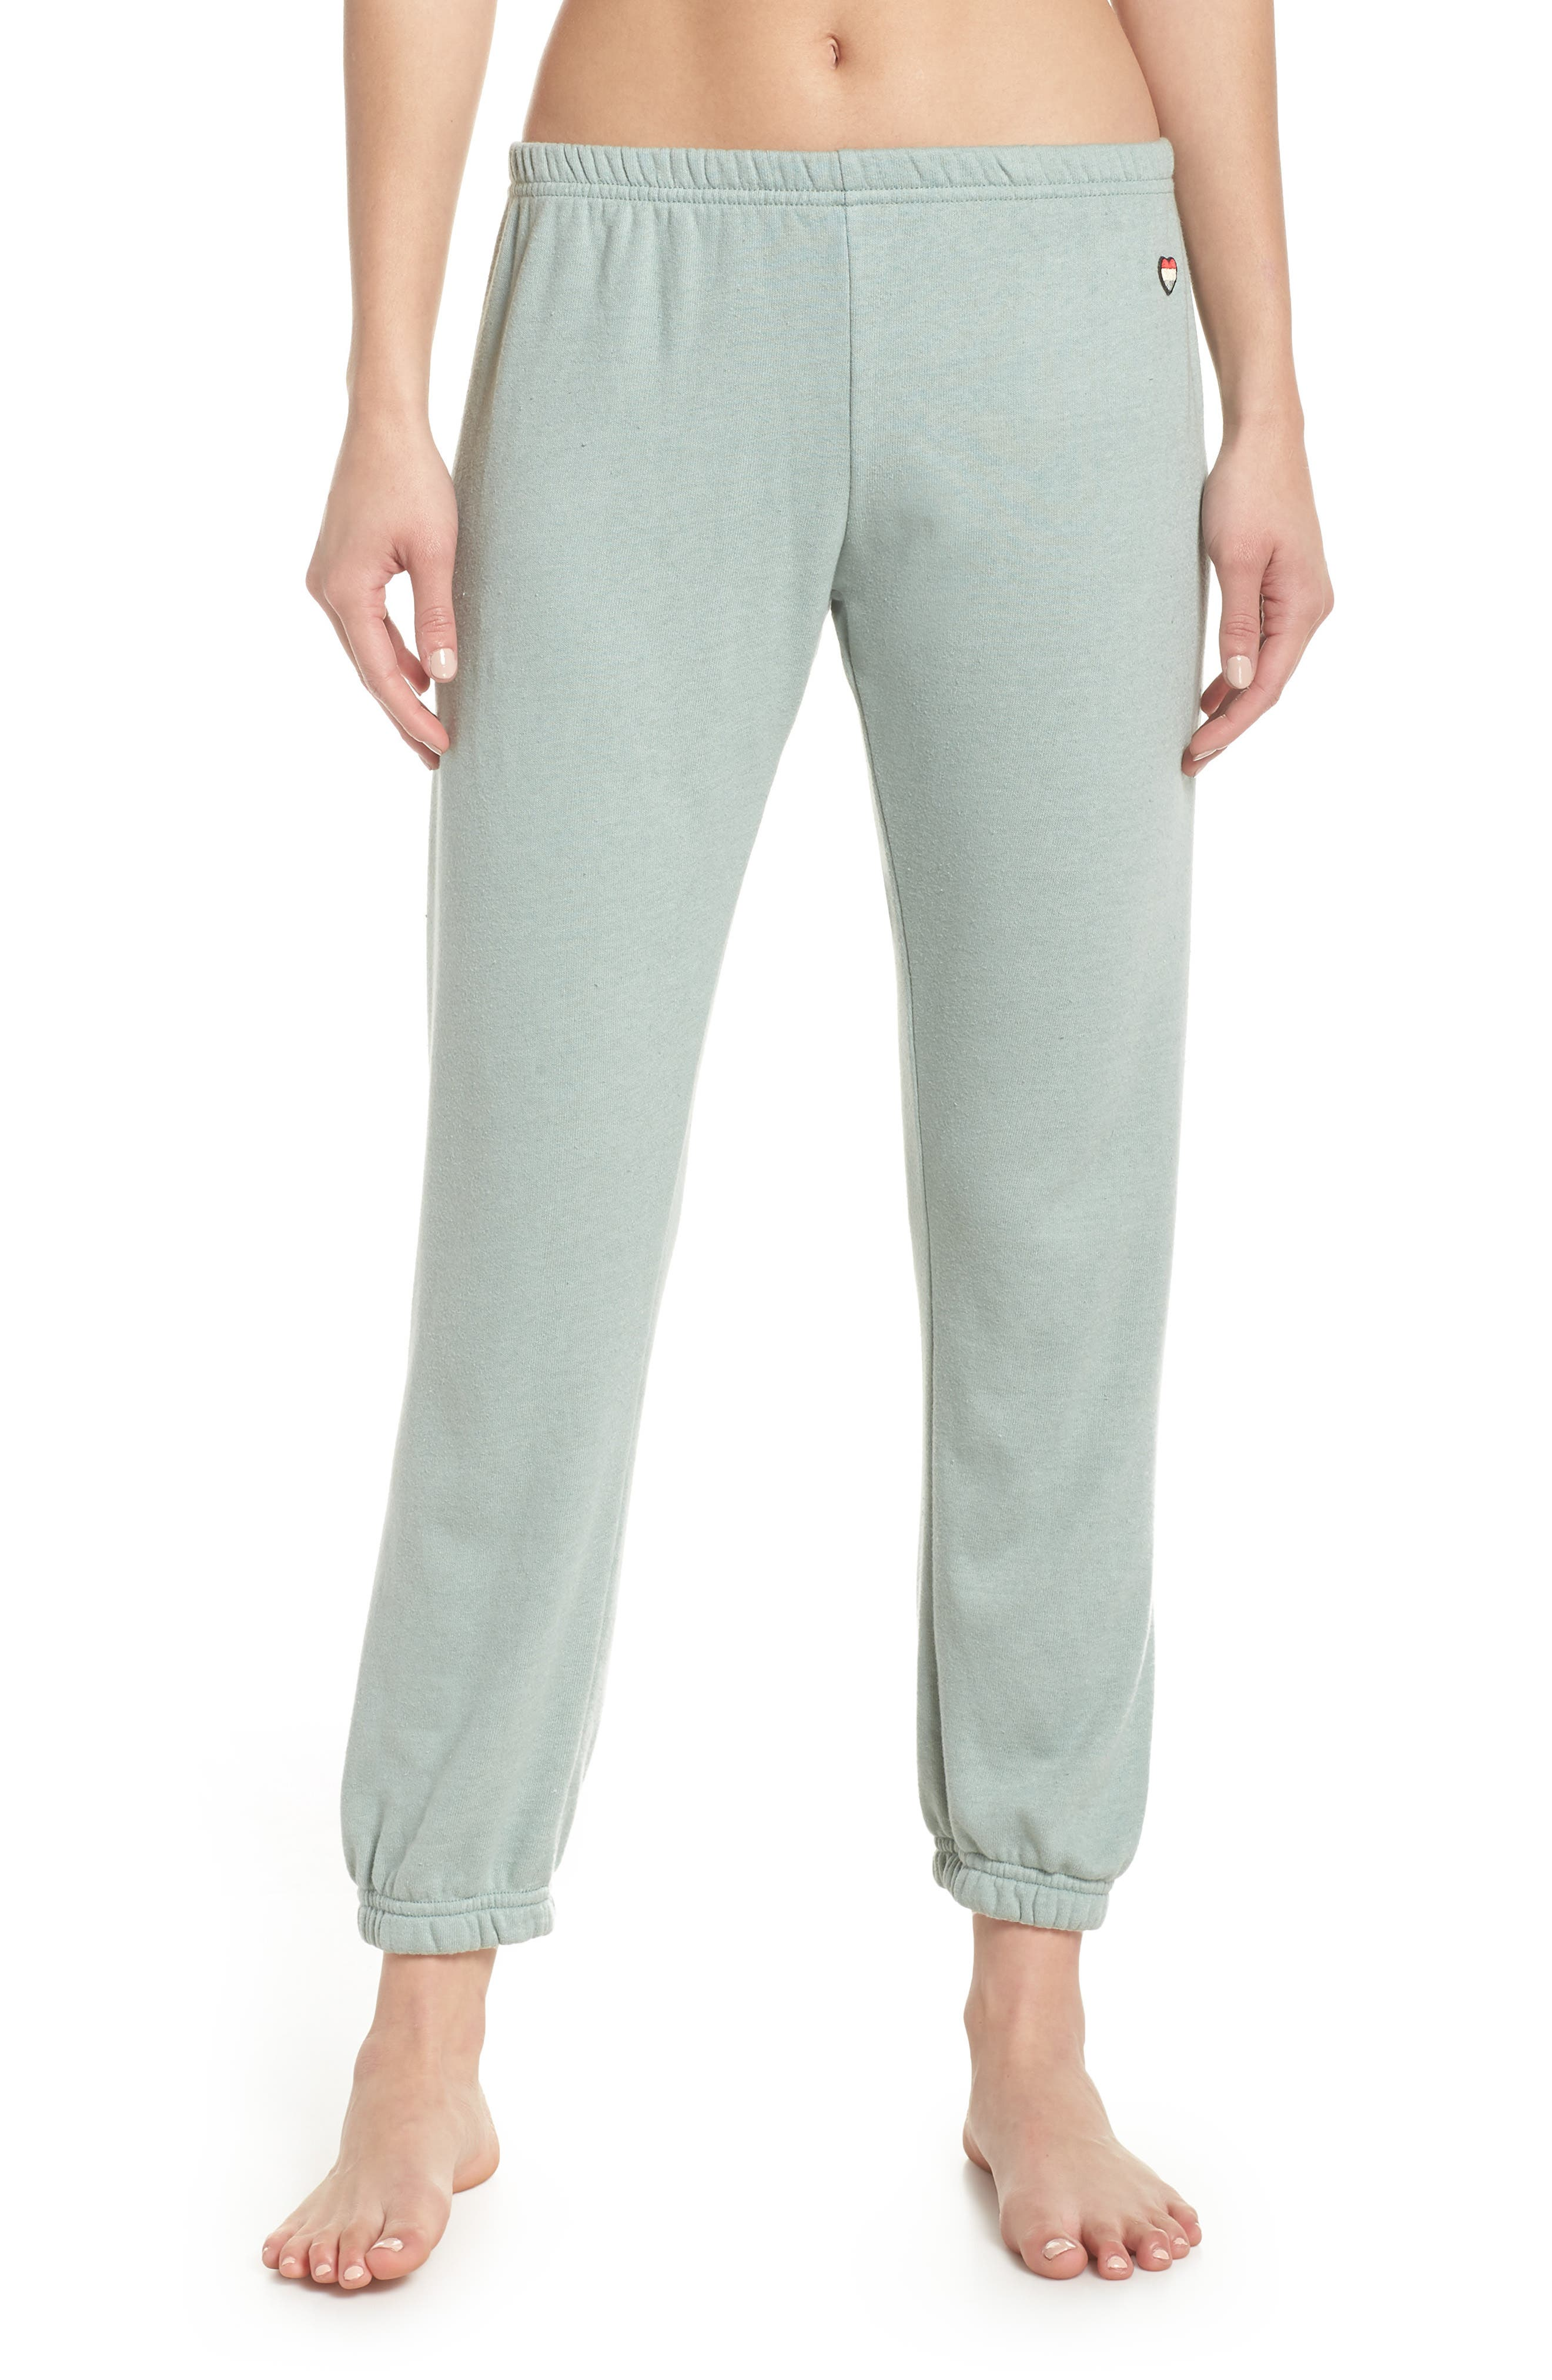 SPIRITUAL GANGSTER Only Love Perfect Sweatpants, Main, color, 314